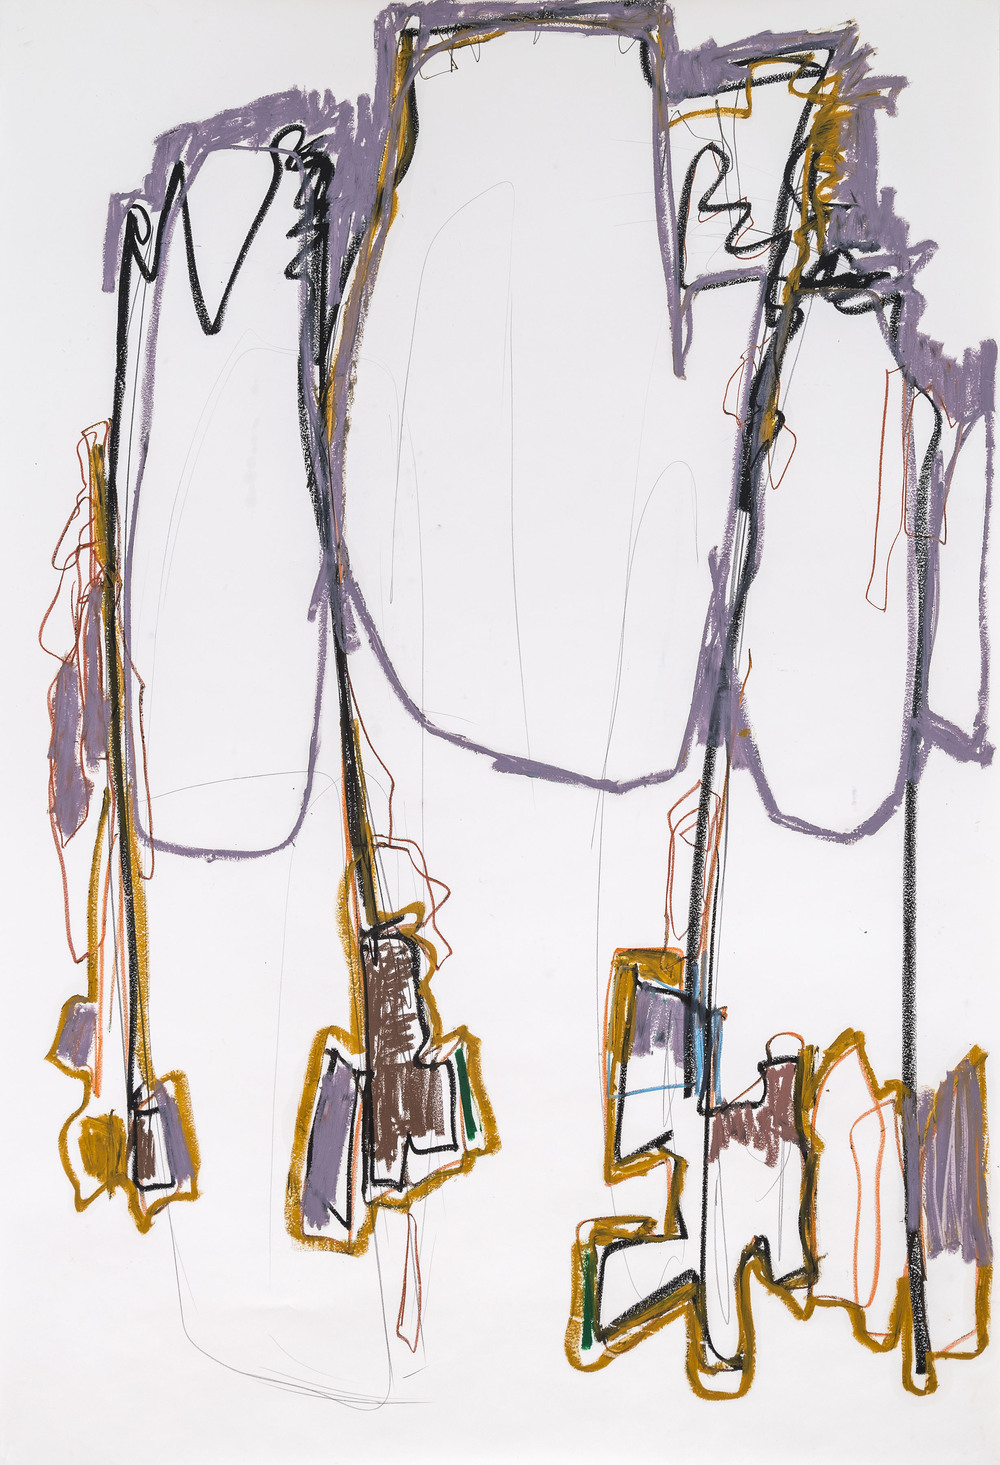 Heavy Lifting   Hook & Eye Project - Mary Prescott, piano  2014  oil stick & charcoal on paper  62x38""